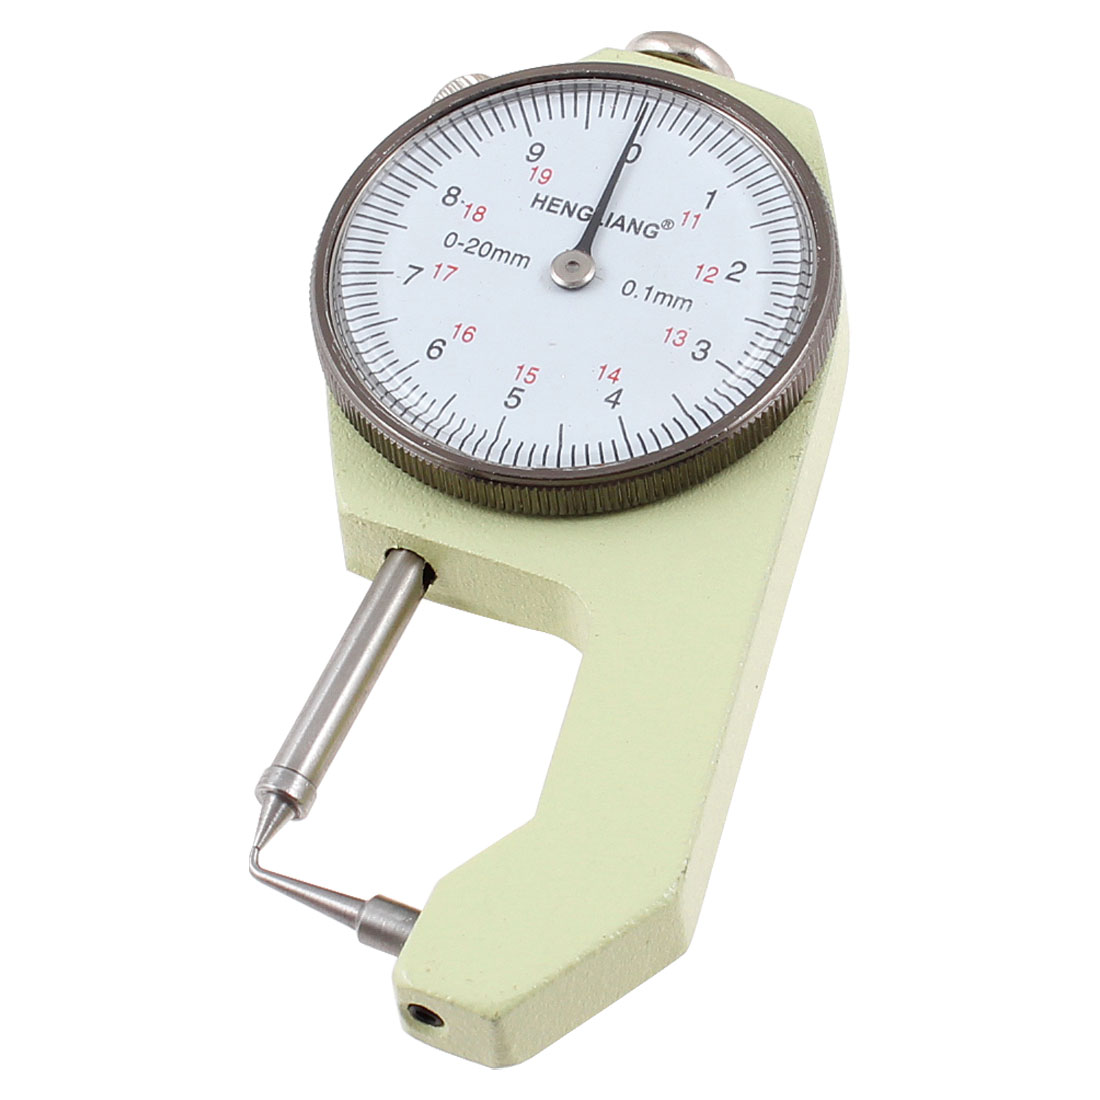 0 to 20mm x 0.1mm Cusp Head Dial Thickness Gauge Measuring Tool Beige